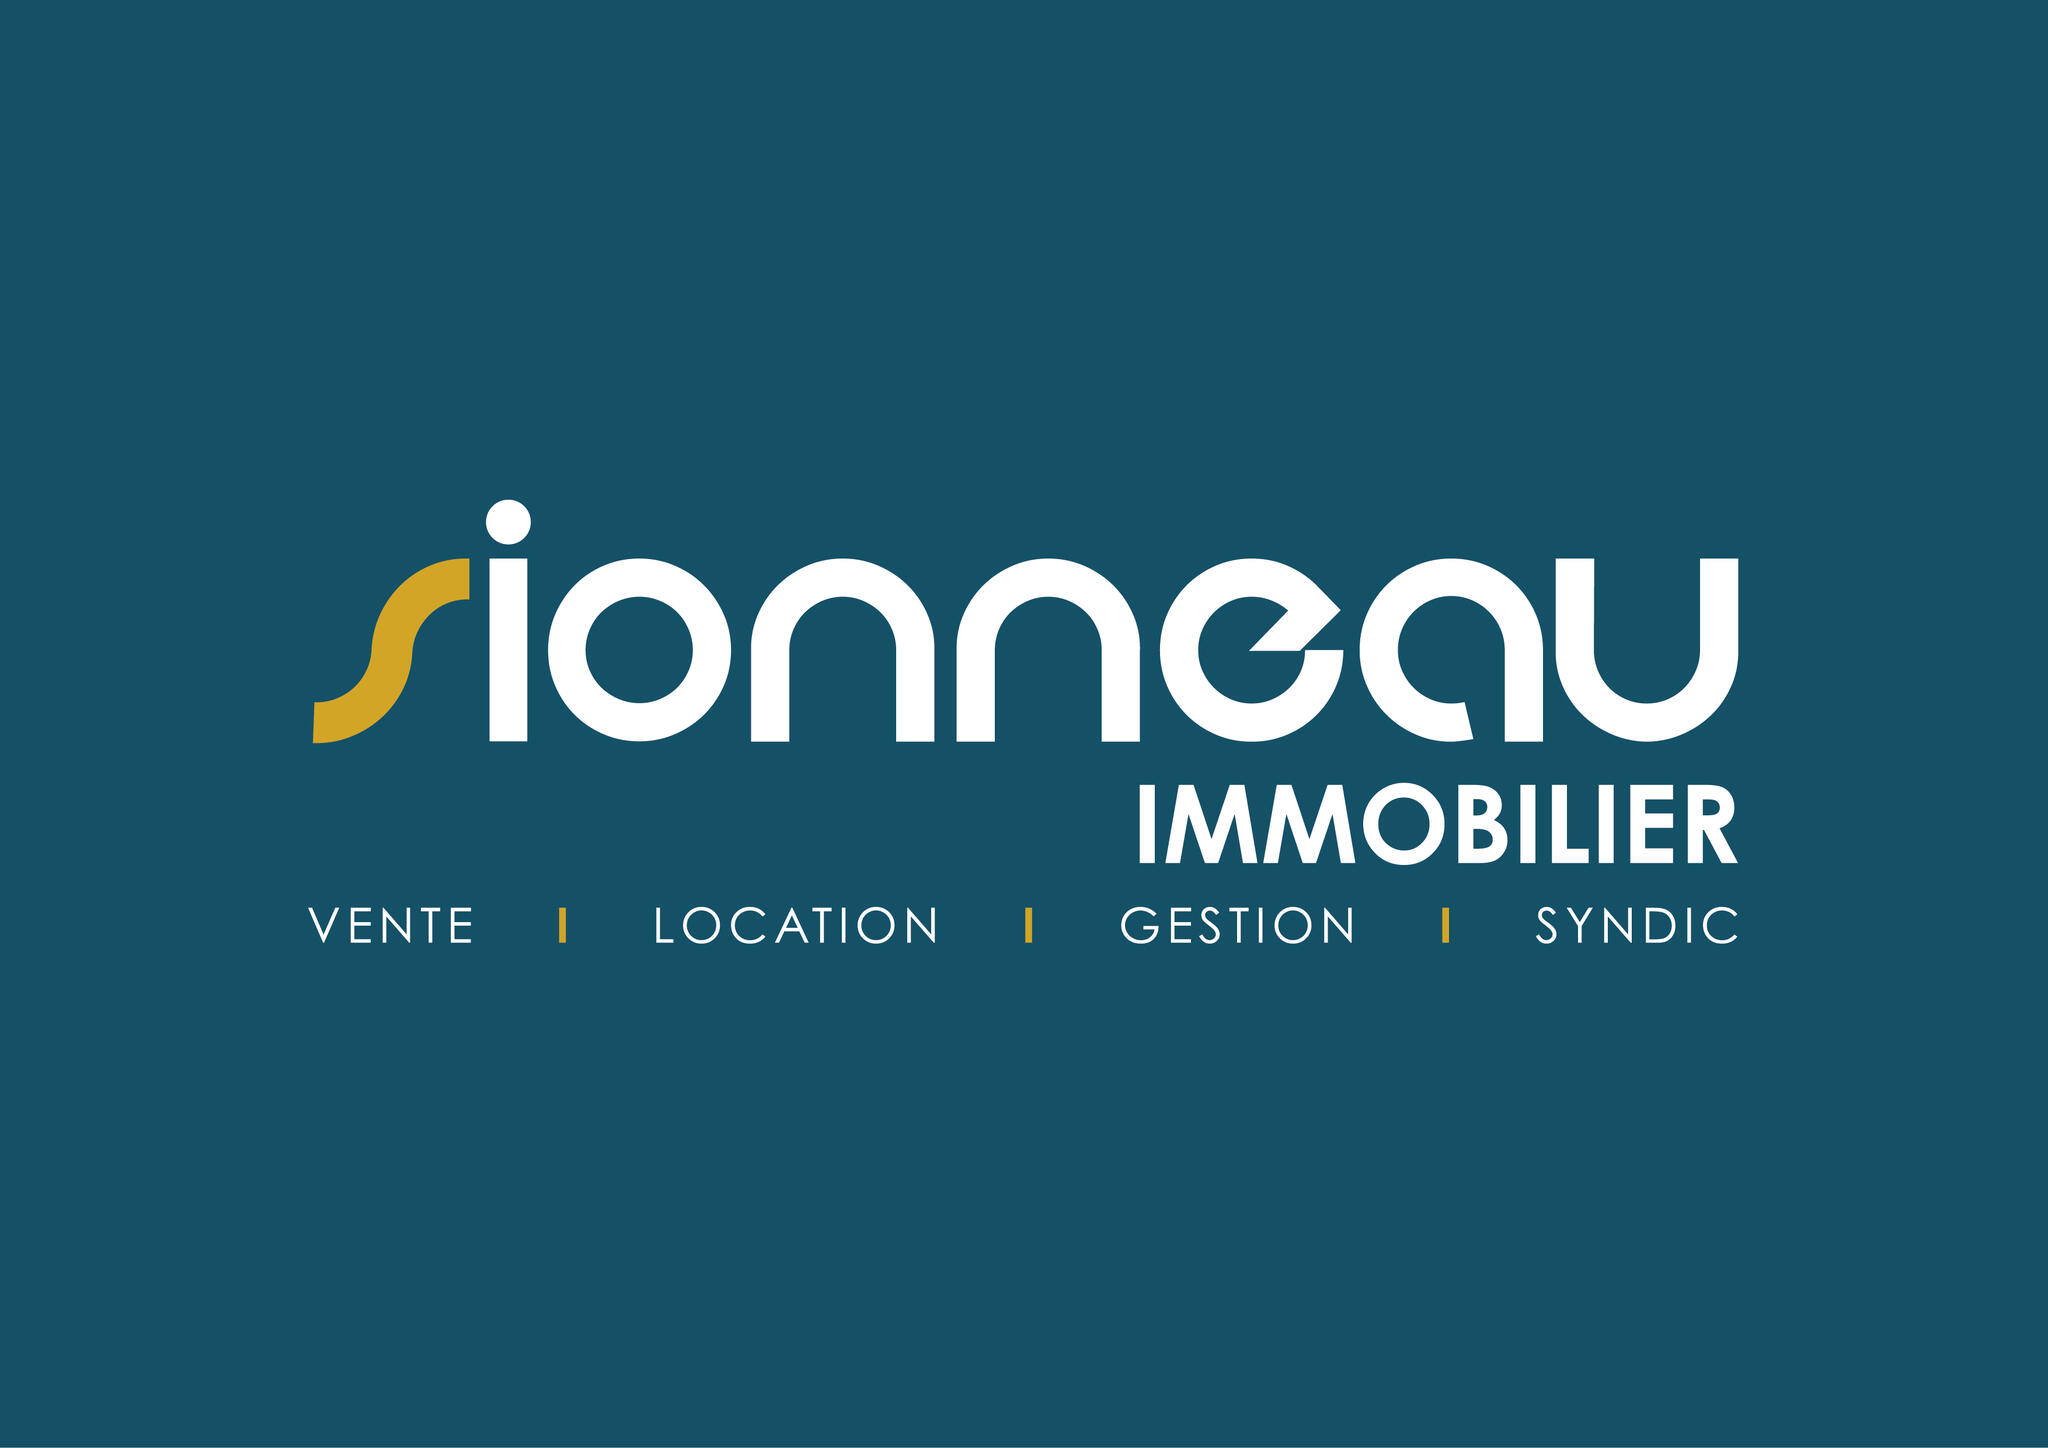 Httpswwwouestfrance Immocomannuaire Immobilier